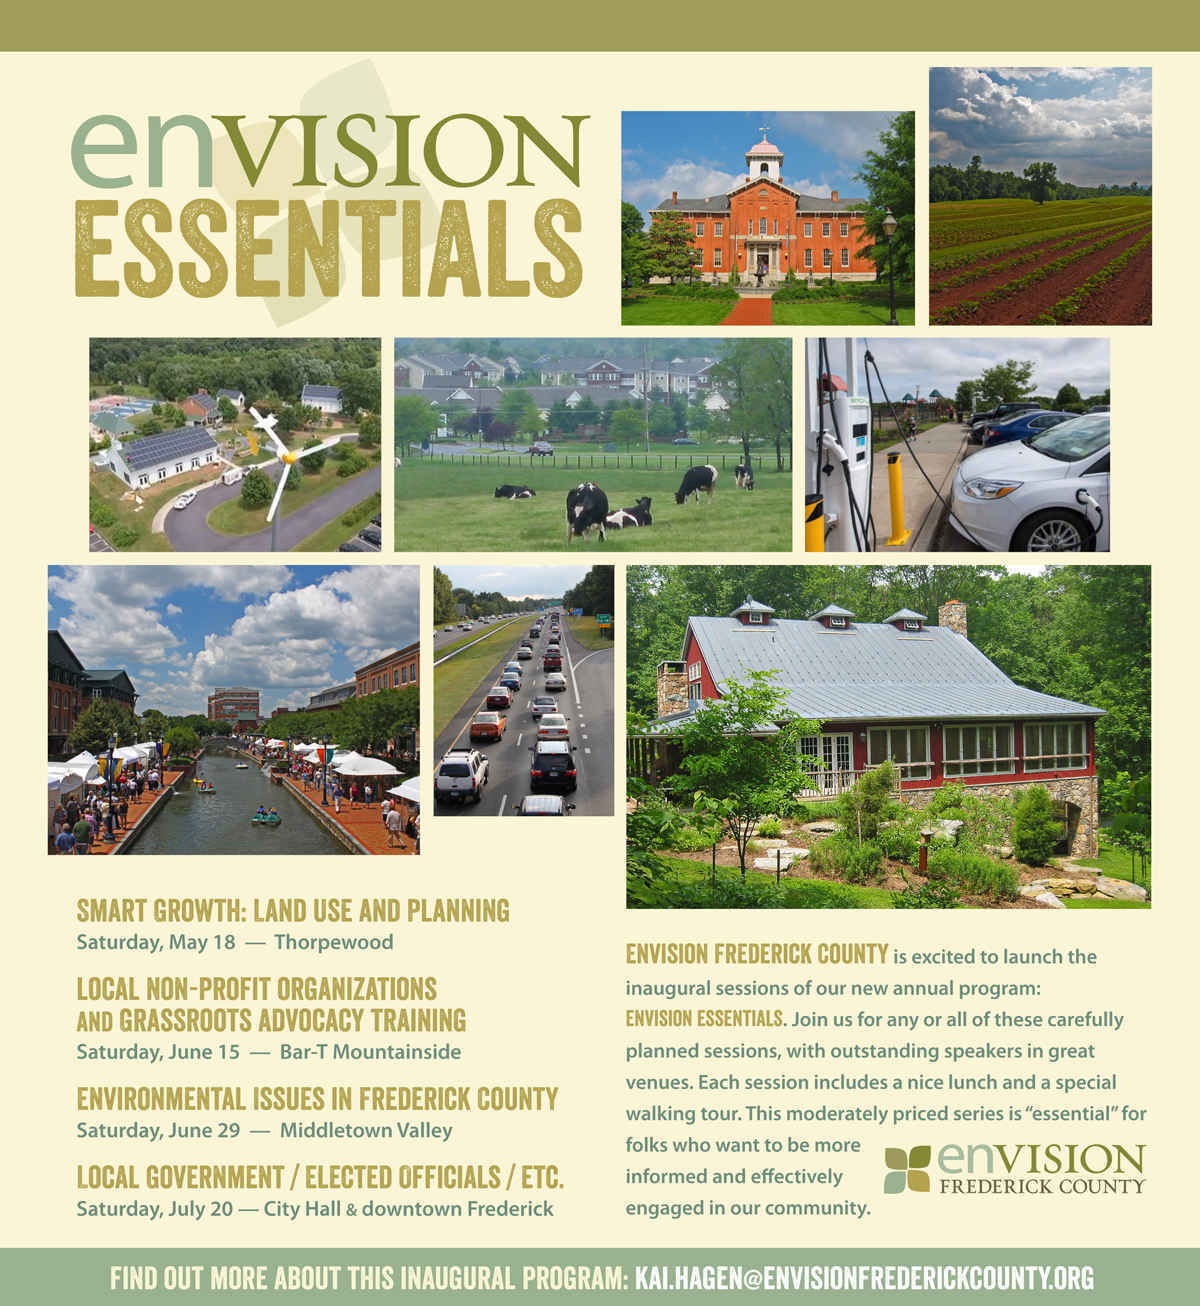 Envision Essentials image